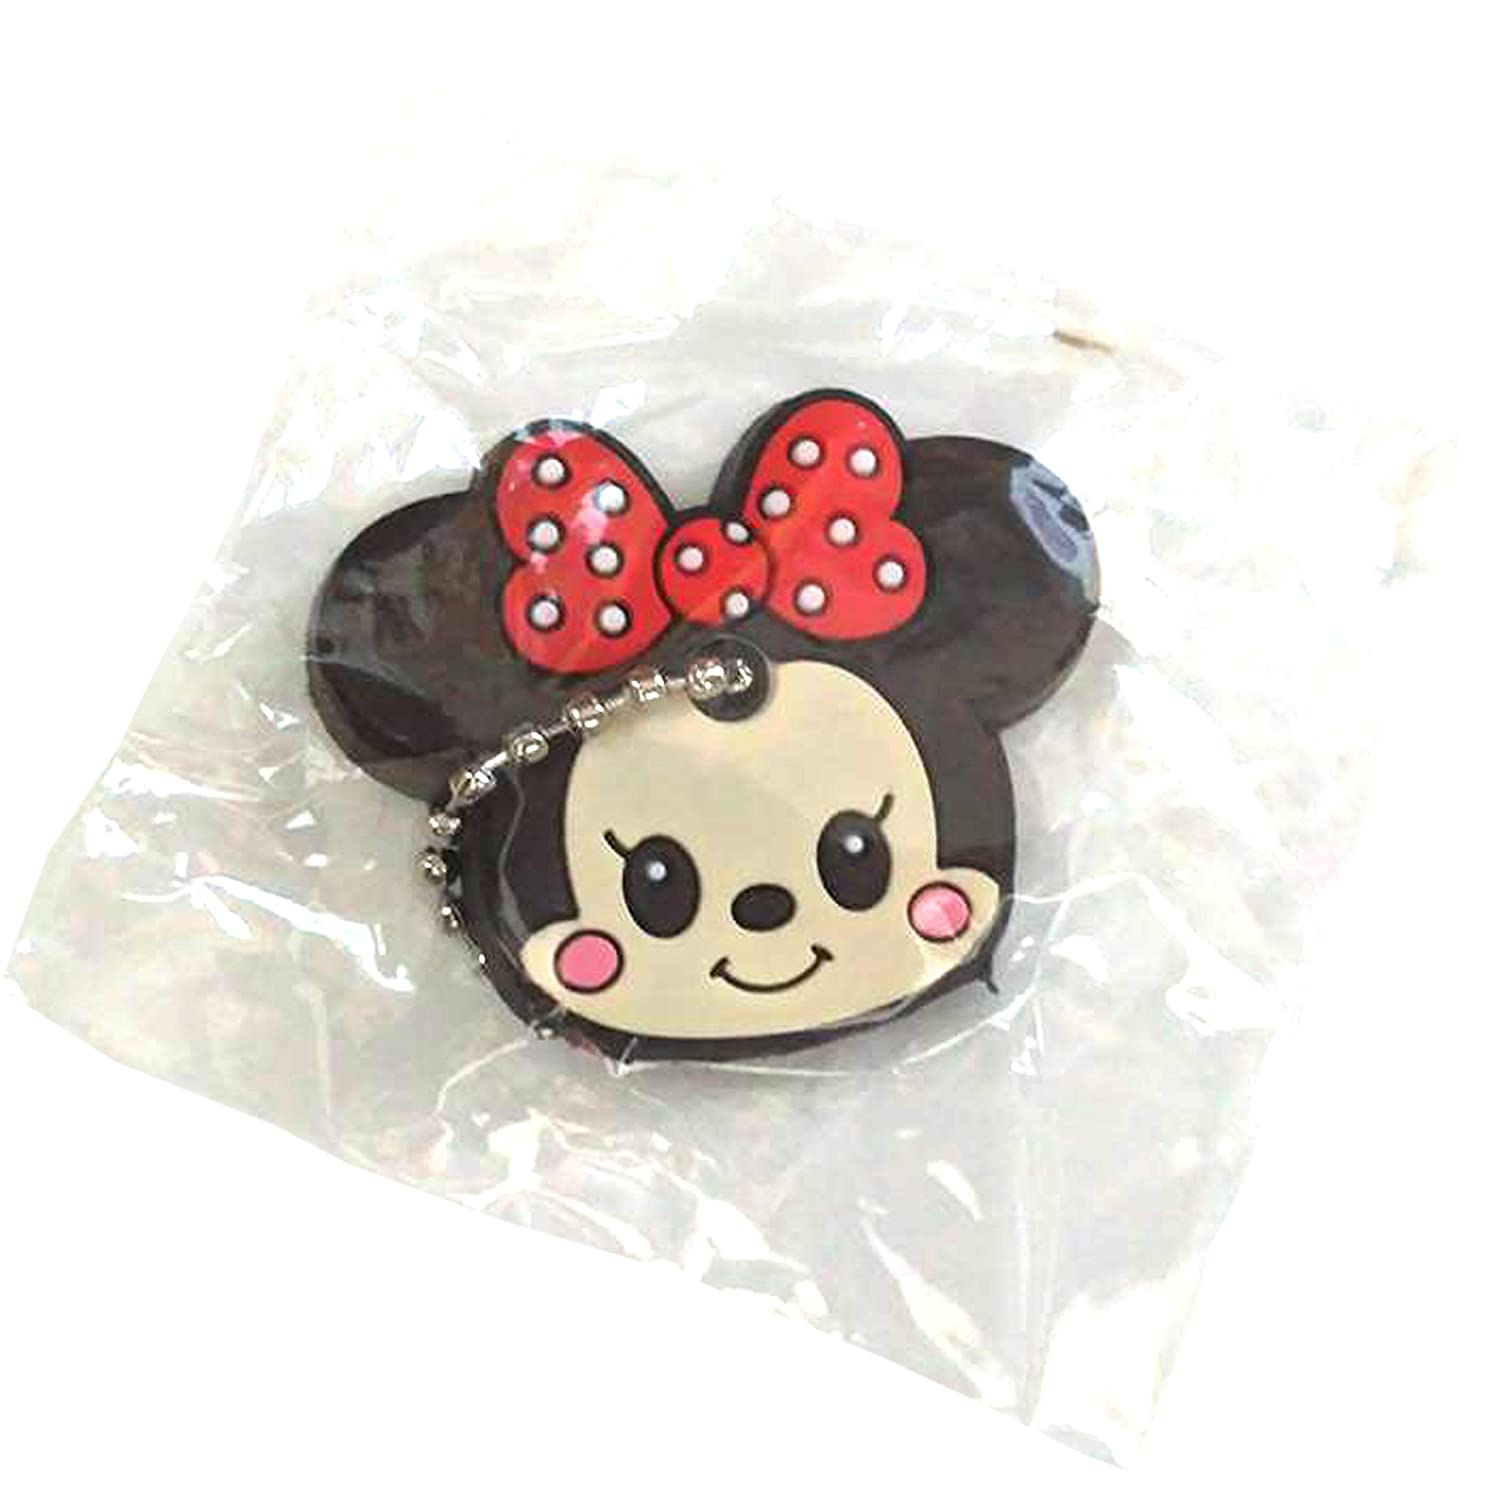 Minnie Mouse: Cadenita para llaves - Llavero: Amazon.es ...